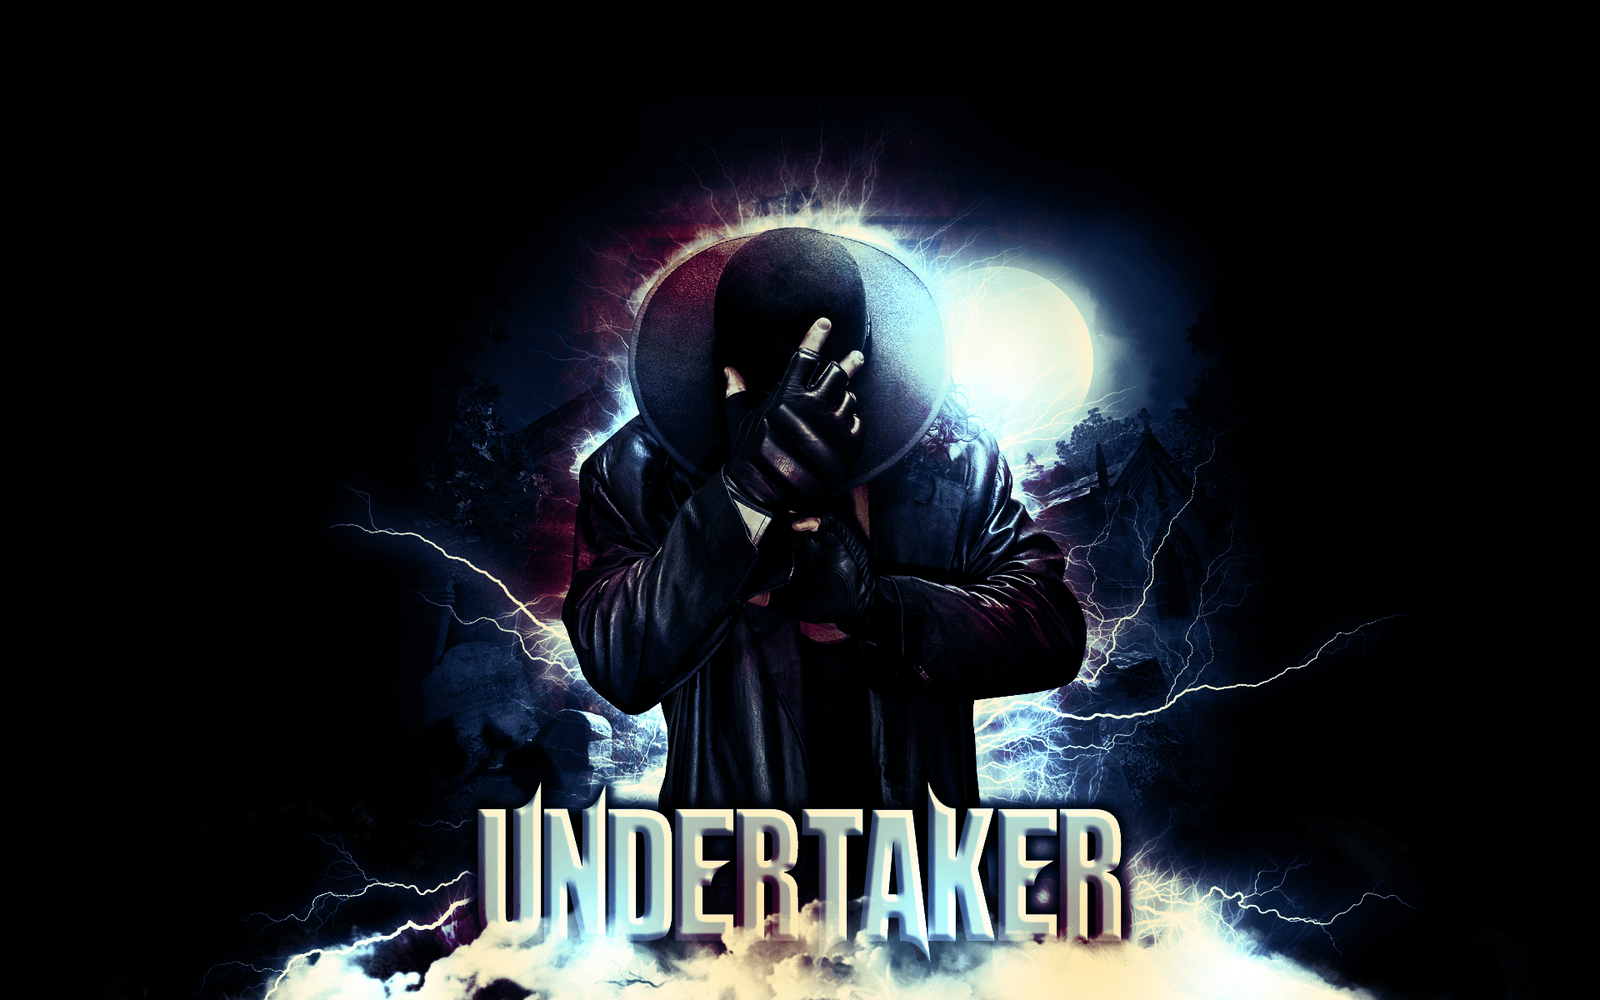 The Undertaker Wallpapers 2017 HD - Wallpaper Cave